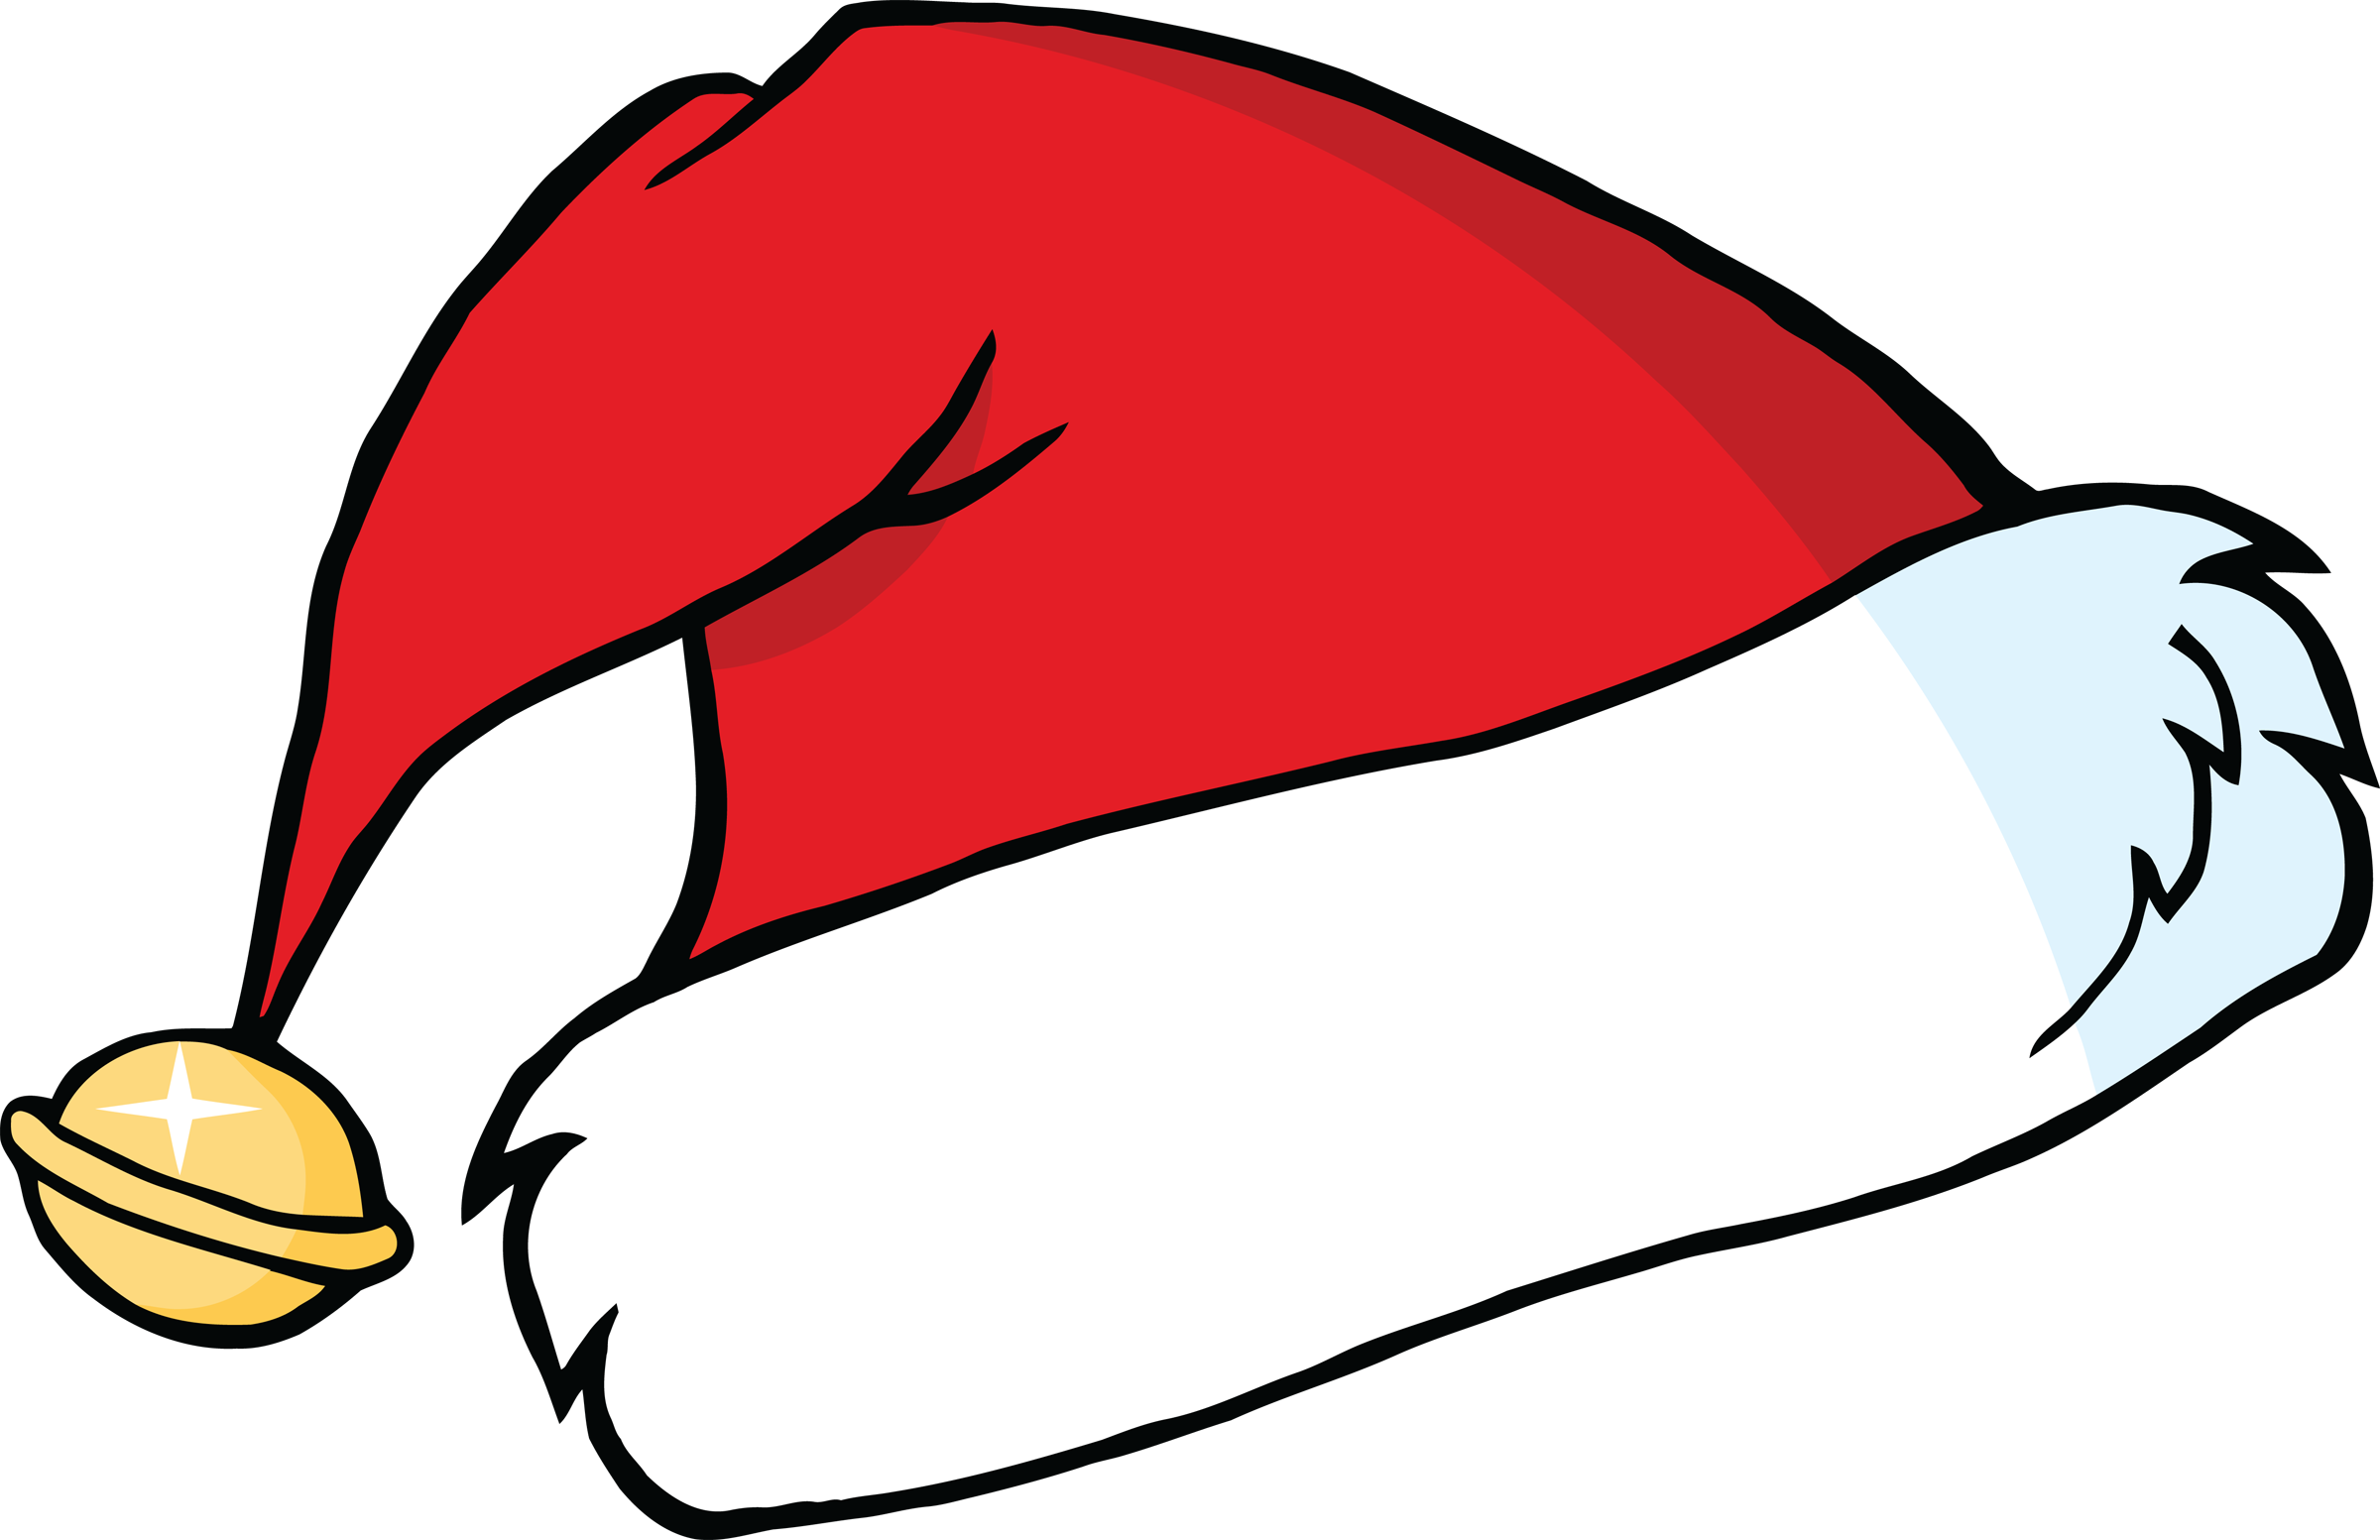 santa hat clipart with transparent background - photo #46